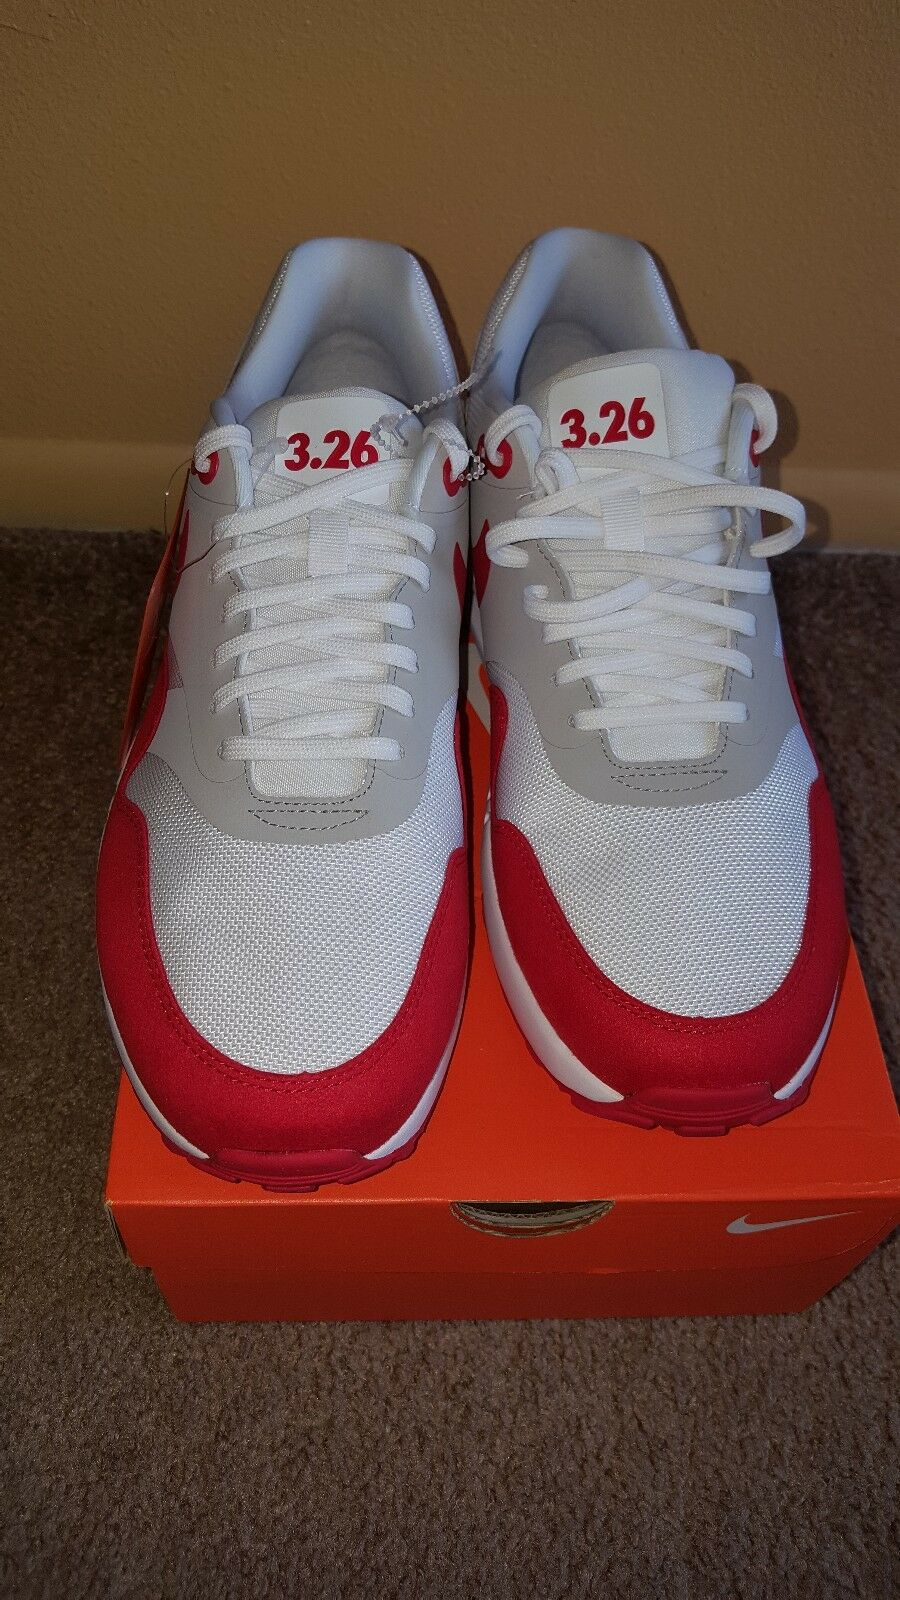 Nike Air Max 1 Ultra 2.0 SIZE 9 DS 908091-100